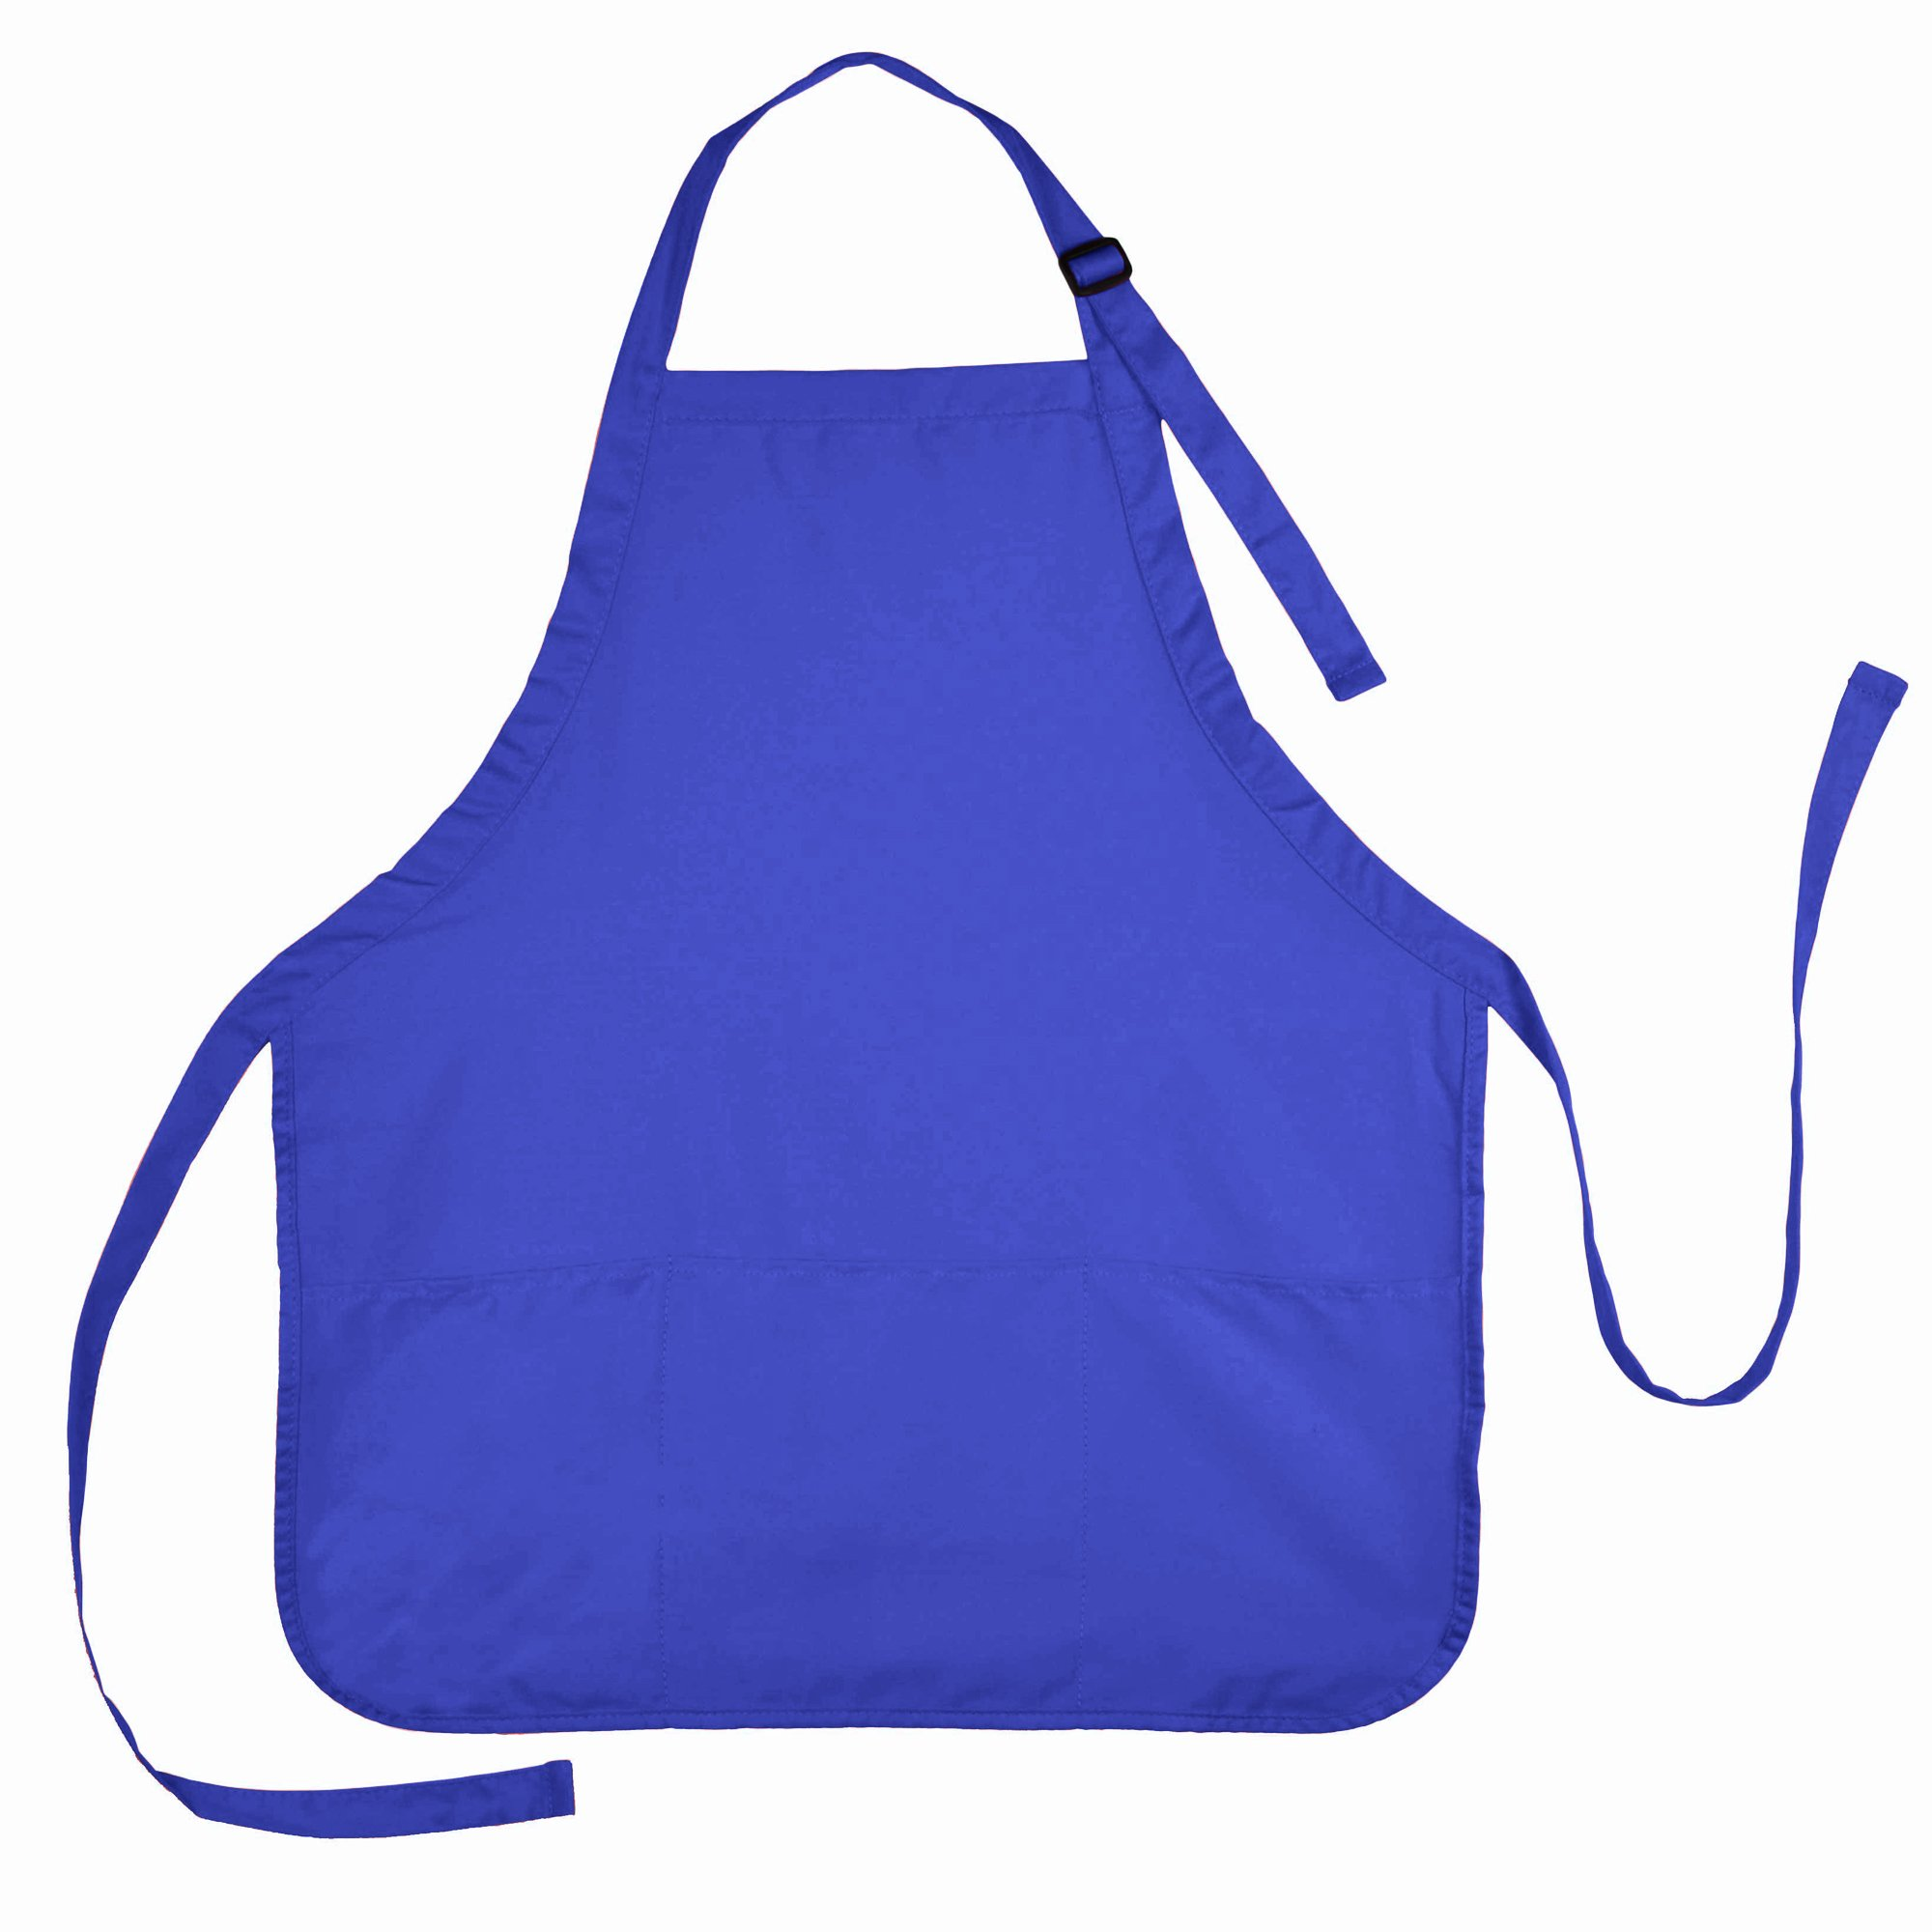 Apron Commercial Restaurant Home Bib Spun Poly Cotton Kitchen Aprons (3 Pockets) in Royal Blue 72 PACK